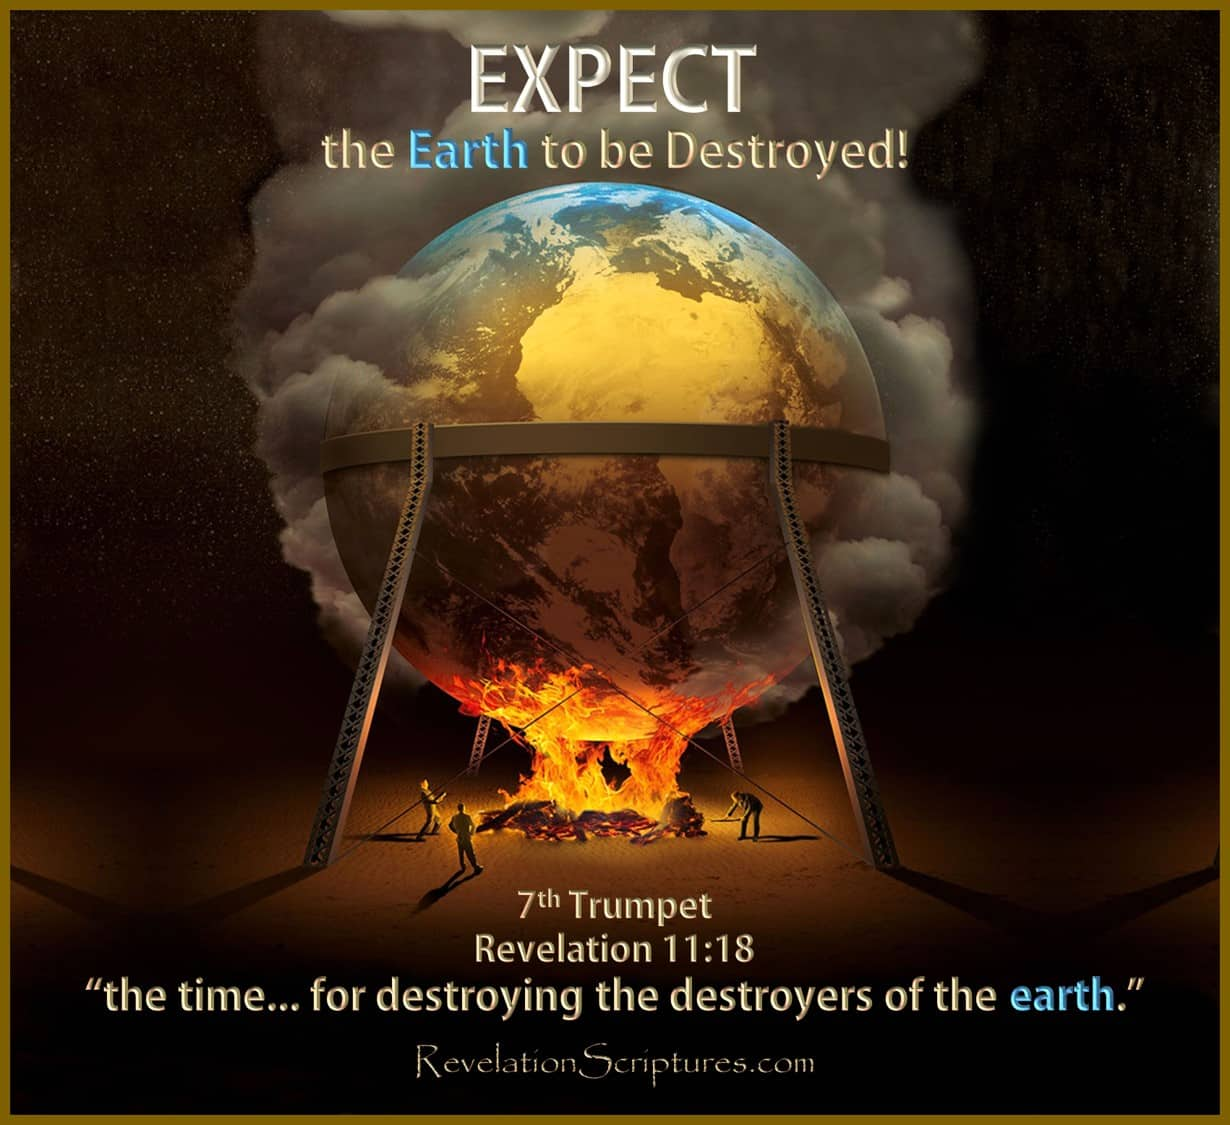 Seventh Trumpet,7th Trumpet,destroy the destroyers of the Earth,time to destroy the destroyers of the earth,Book of Revelation,destroy them which destroy the earth,Revelation 11.18,Revelation Chapter 11,Rev 11,Rev 11.18